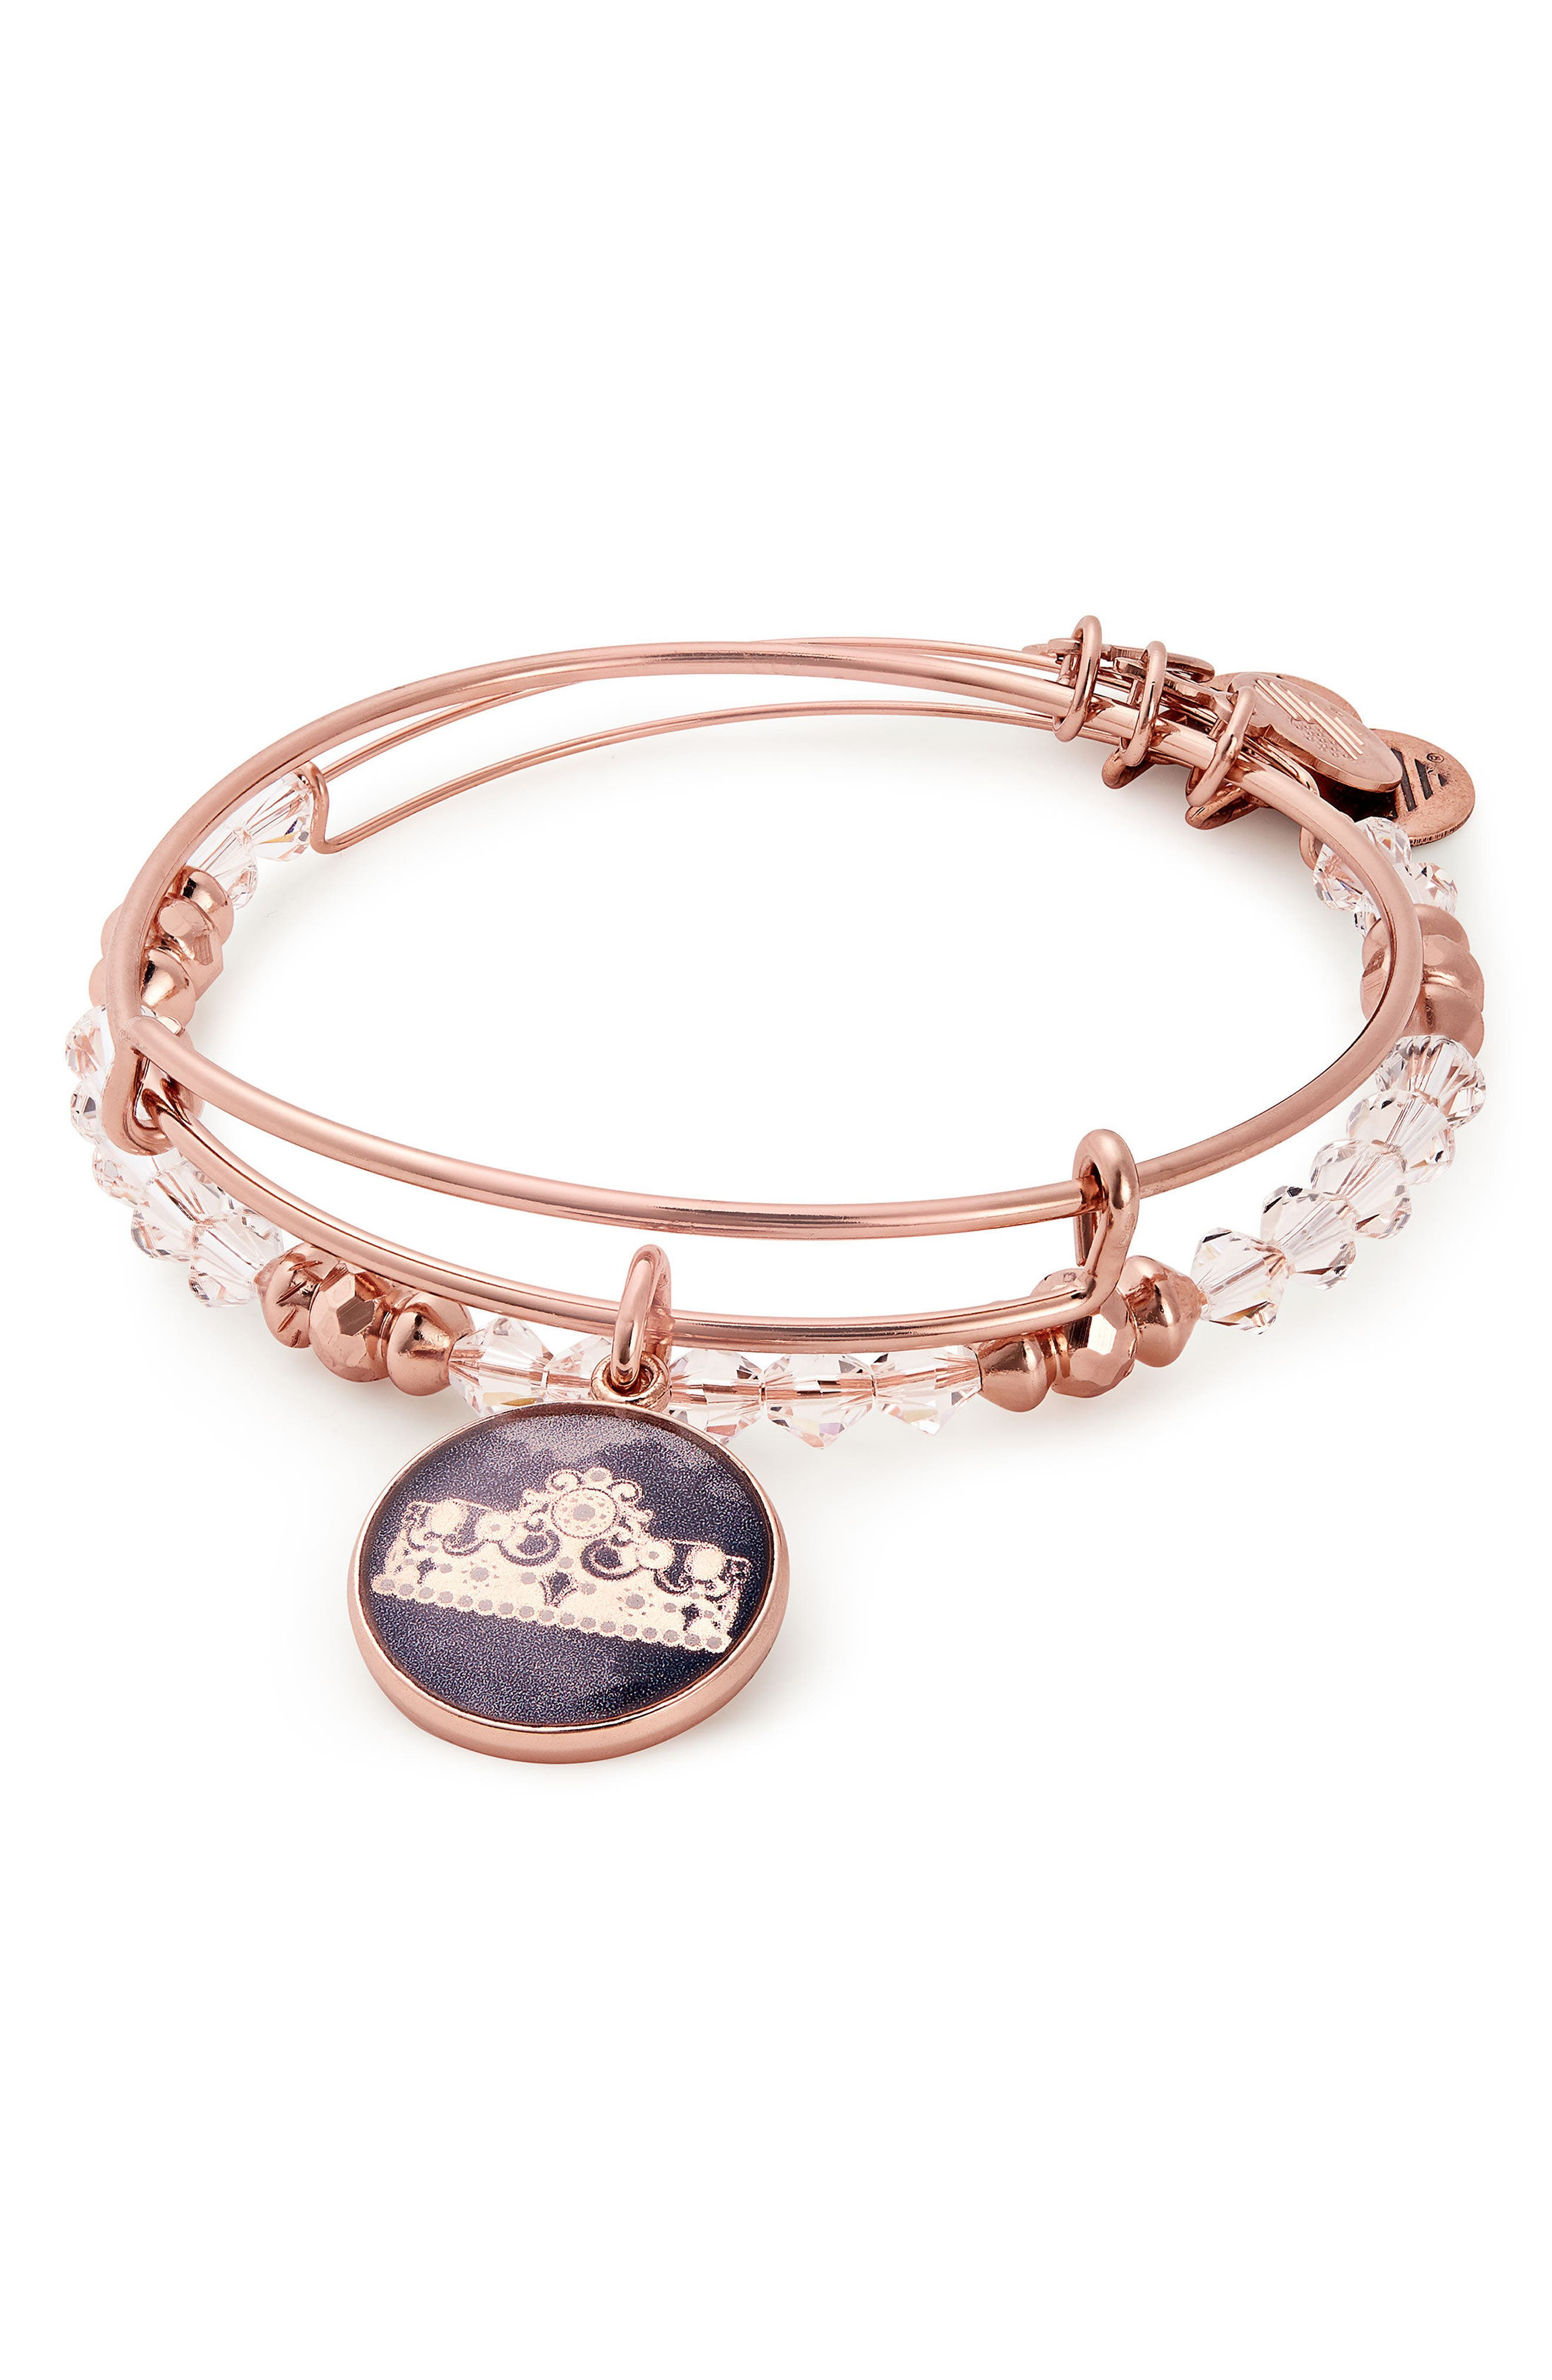 Queen's Crown Set of 2 Adjustable Wire Bangles,                             Alternate thumbnail 2, color,                             Rose Gold